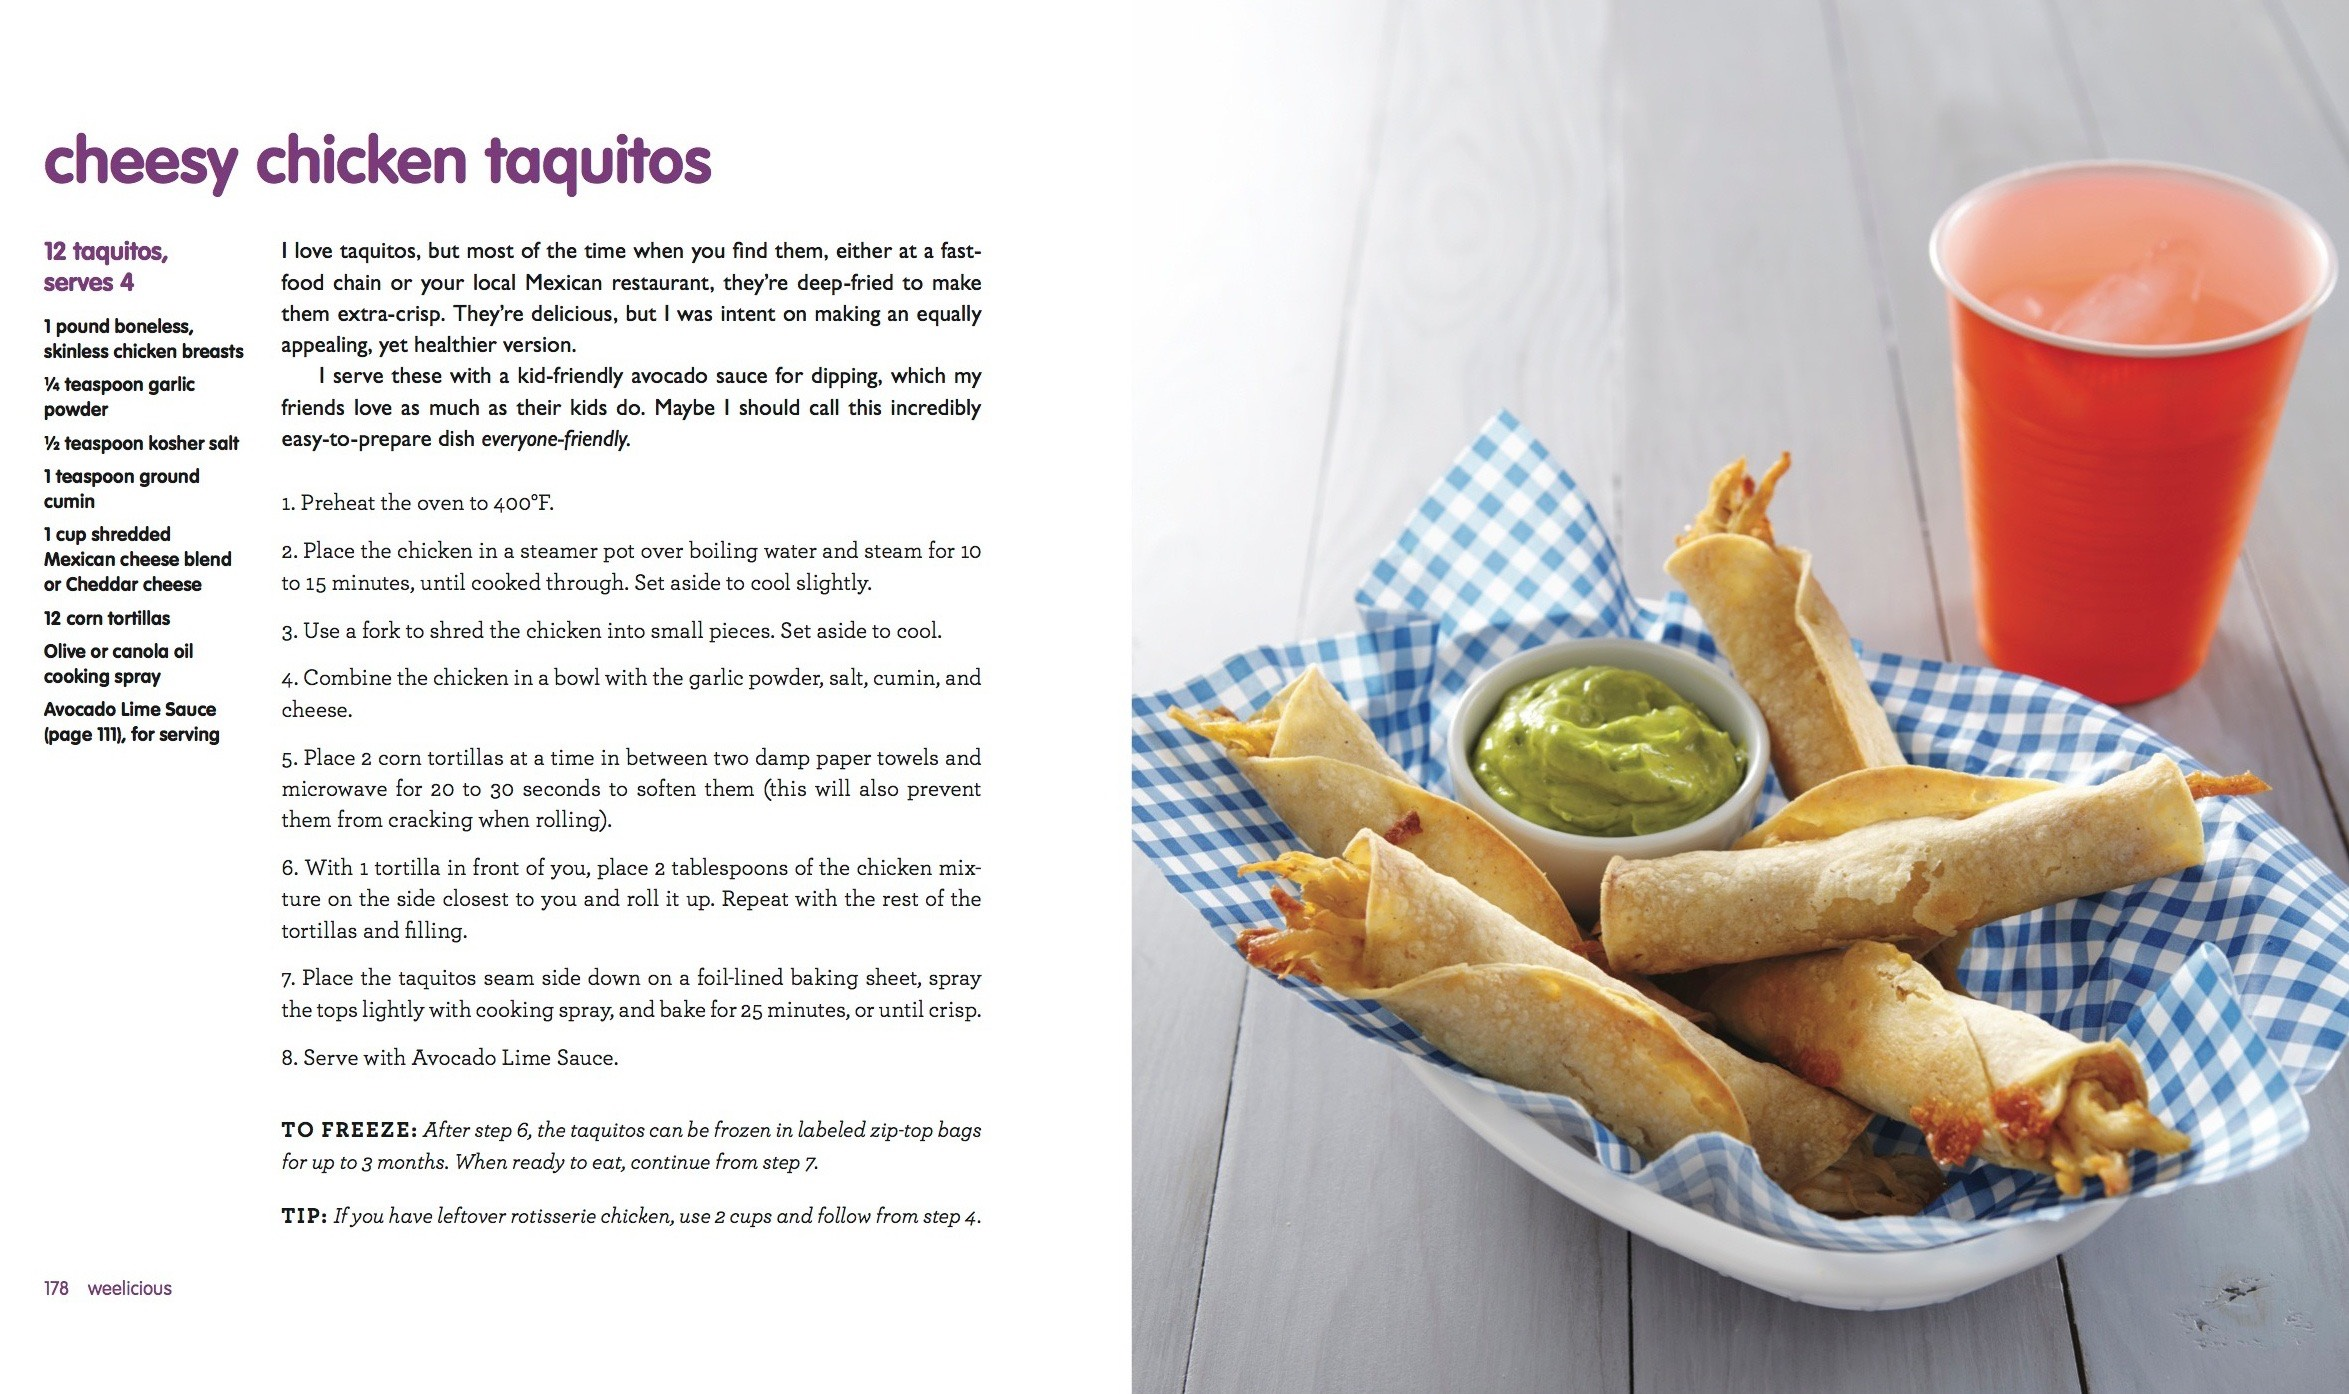 Shhh... 5 Recipes From the Weelicious Cookbook | Weelicious